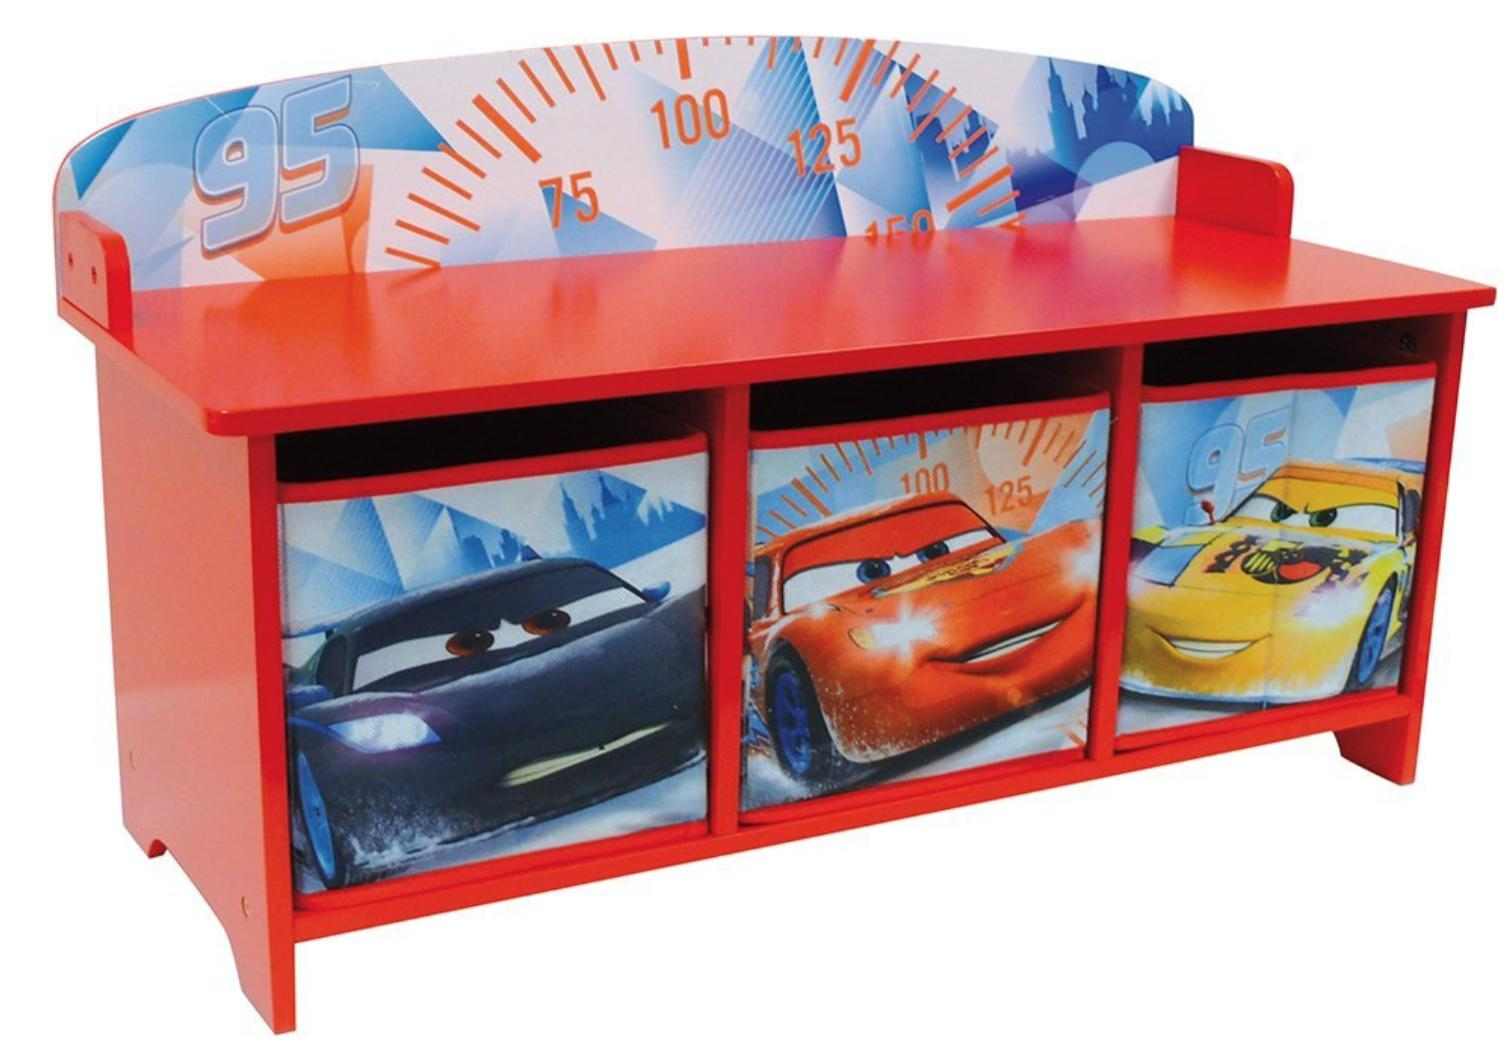 banc avec bacs de rangement ice racing cars disney. Black Bedroom Furniture Sets. Home Design Ideas